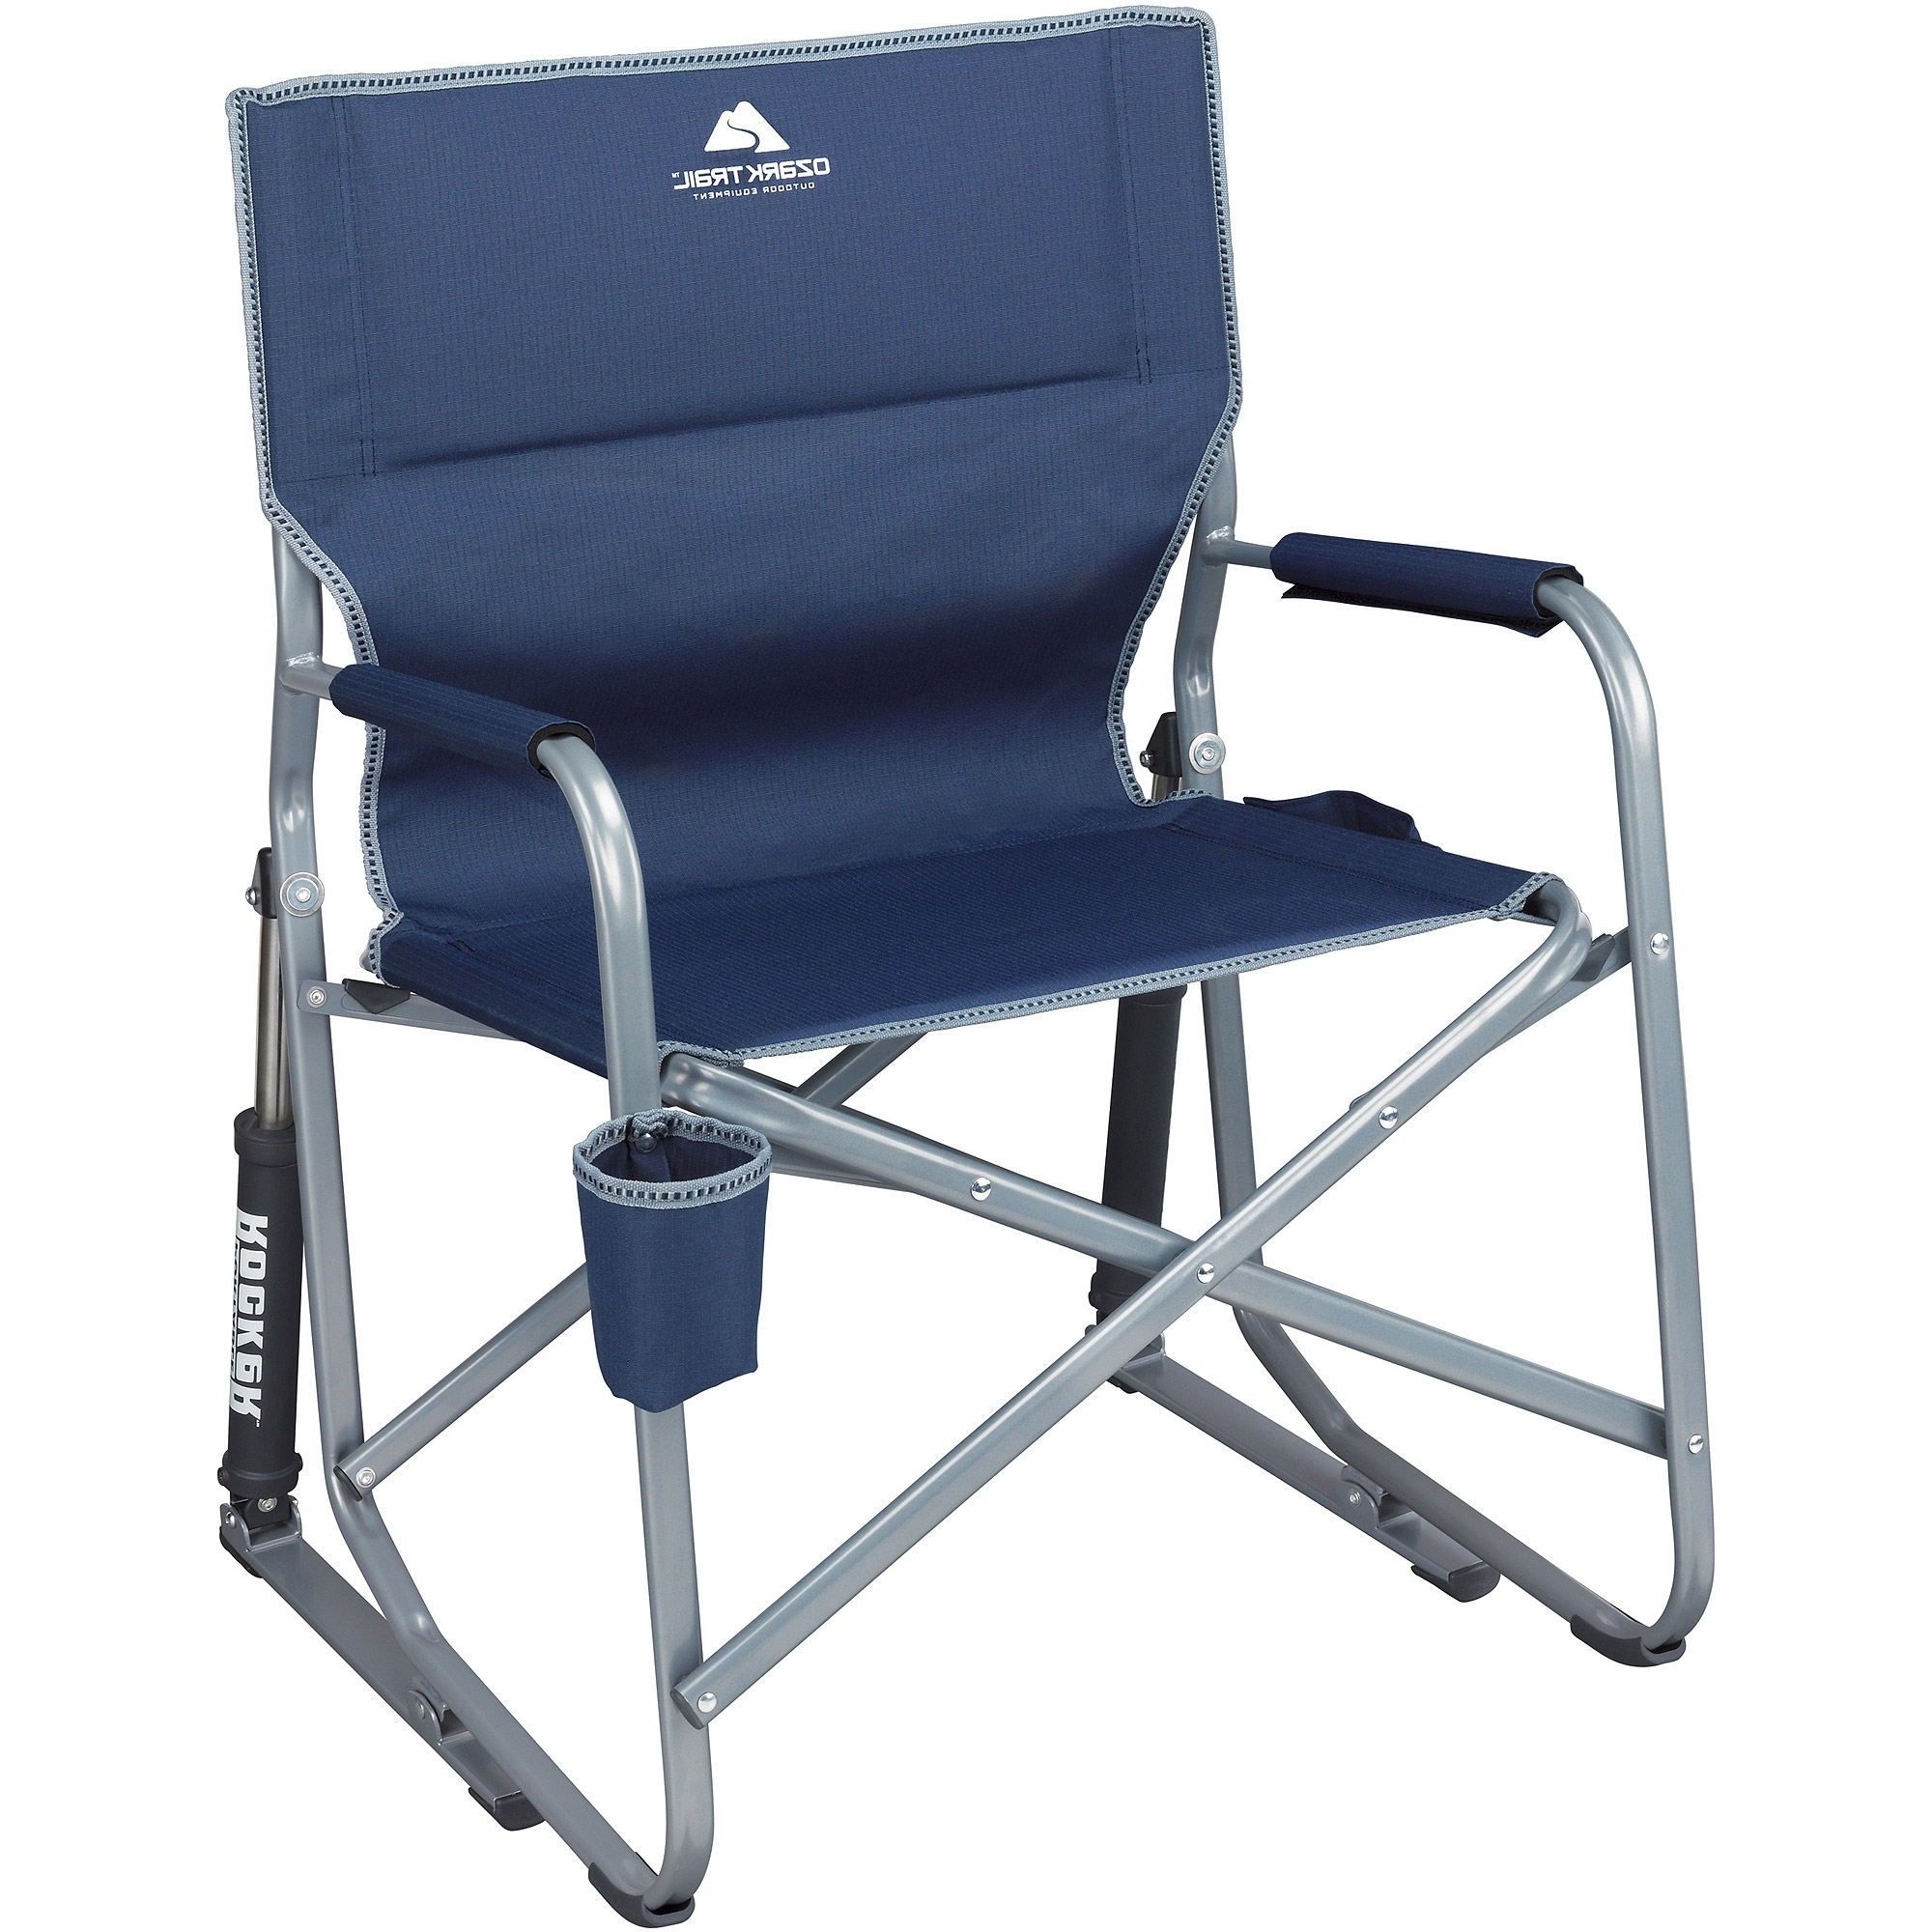 Most Up To Date Ozark Trail Portable Rocking Chair – Walmart With Regard To Folding Rocking Chairs (View 20 of 20)